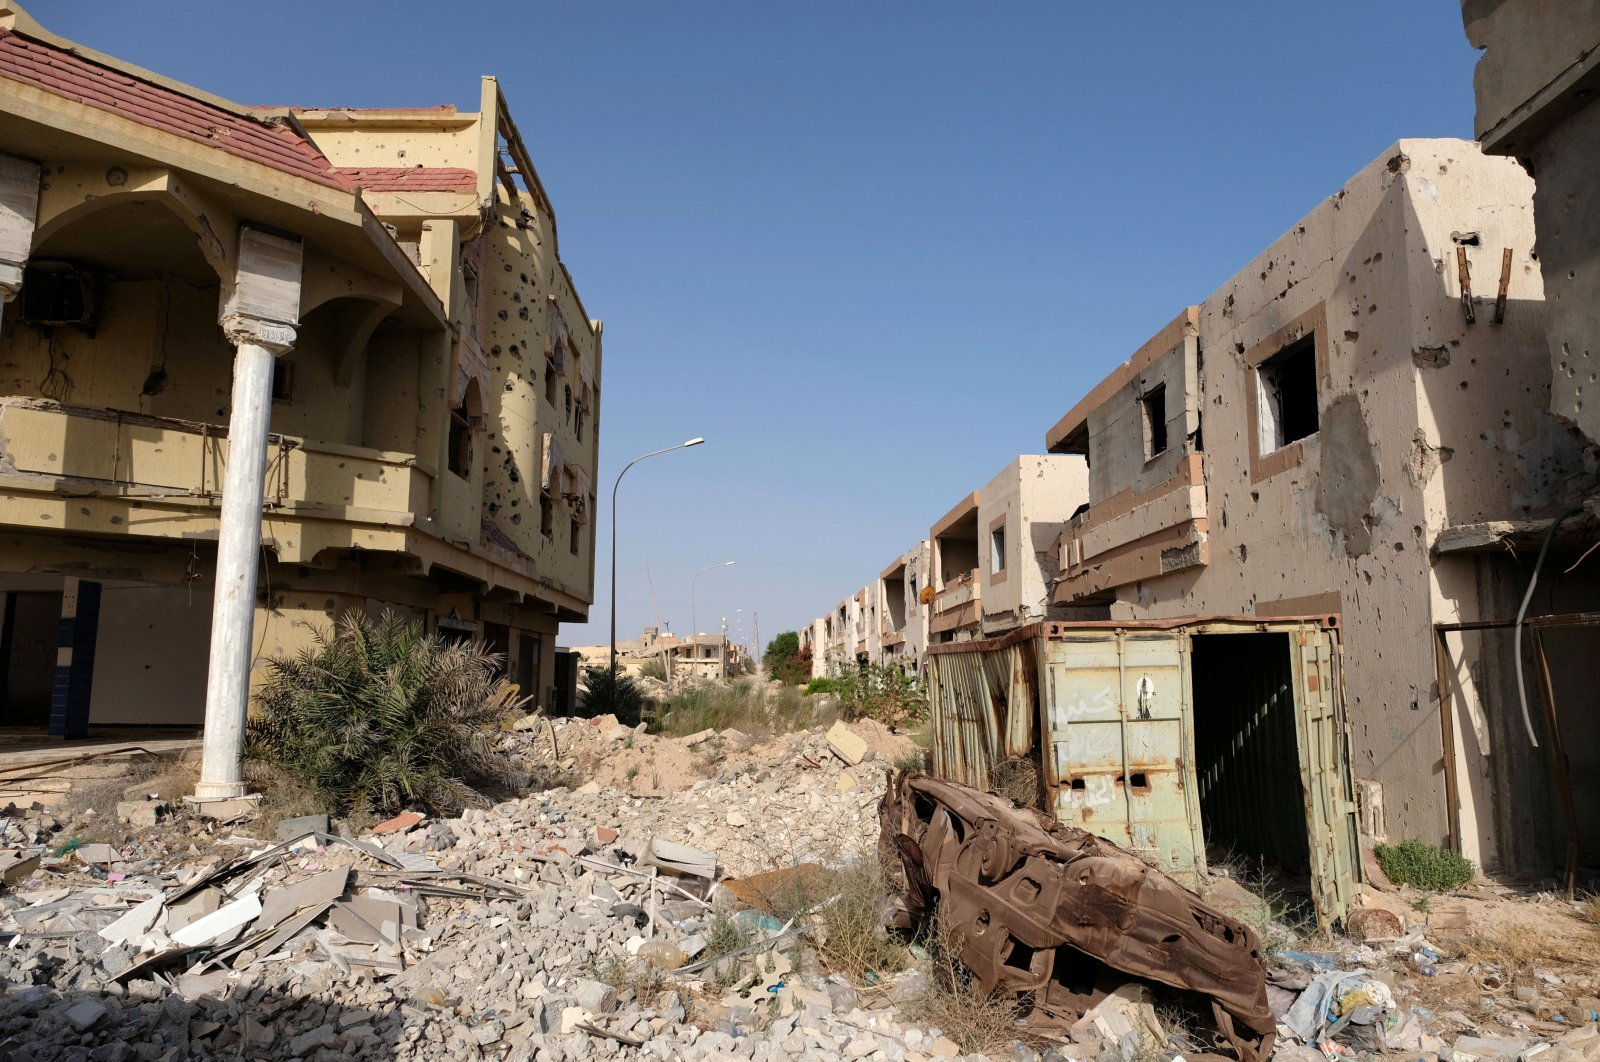 Buildings destroyed during past fighting with Islamic State militants are seen in Sirte, Libya Aug. 18, 2020. (REUTERS)